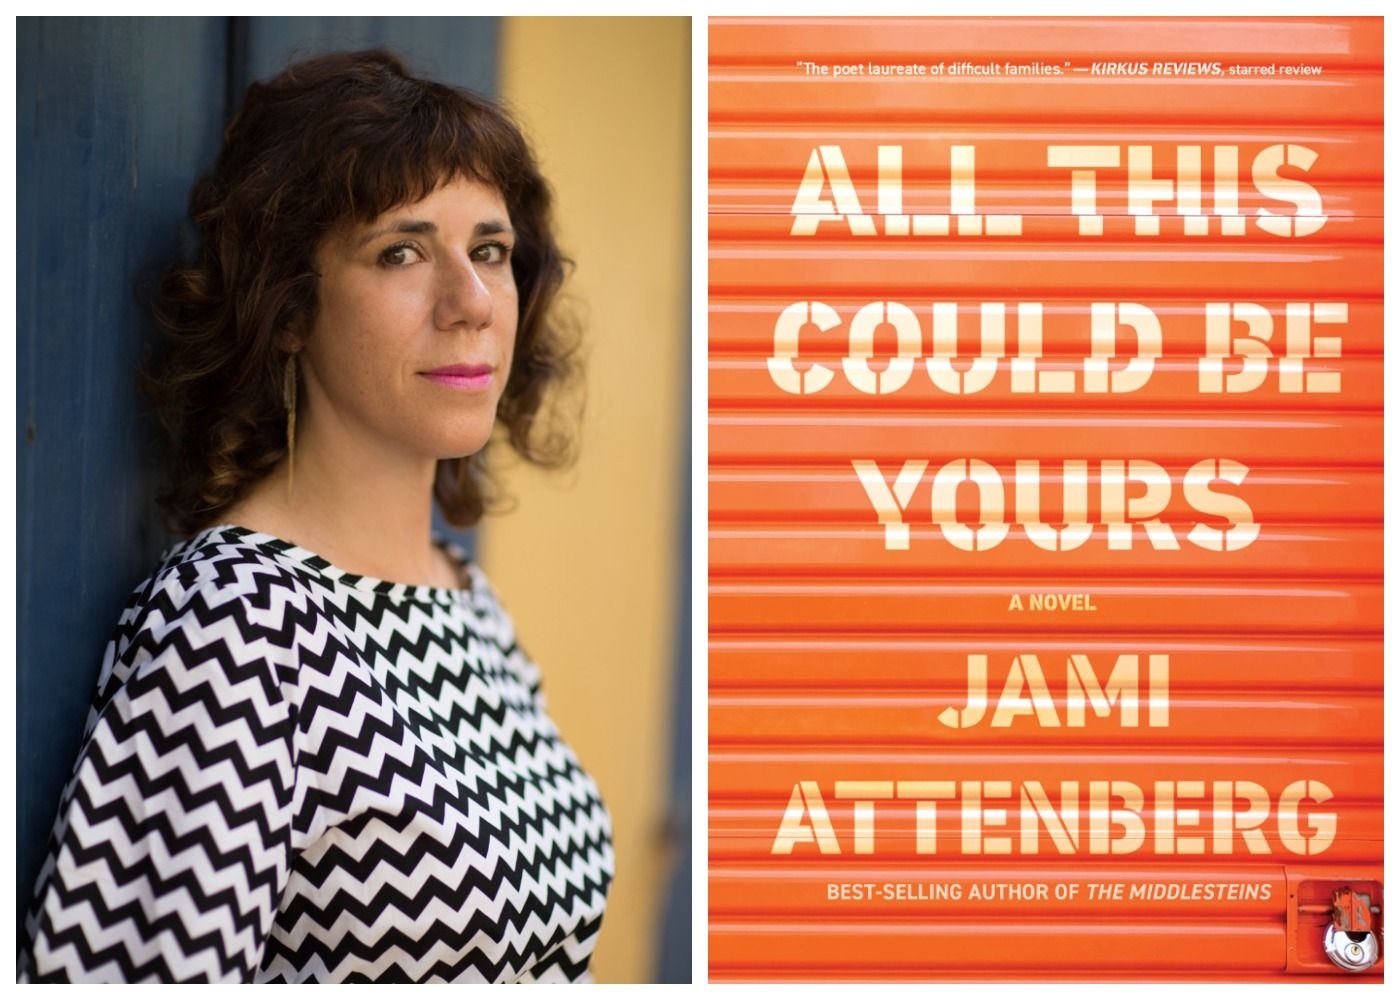 Jami Attenberg Writes Characters She Doesn't Like — and Her Books Are All the Better for It